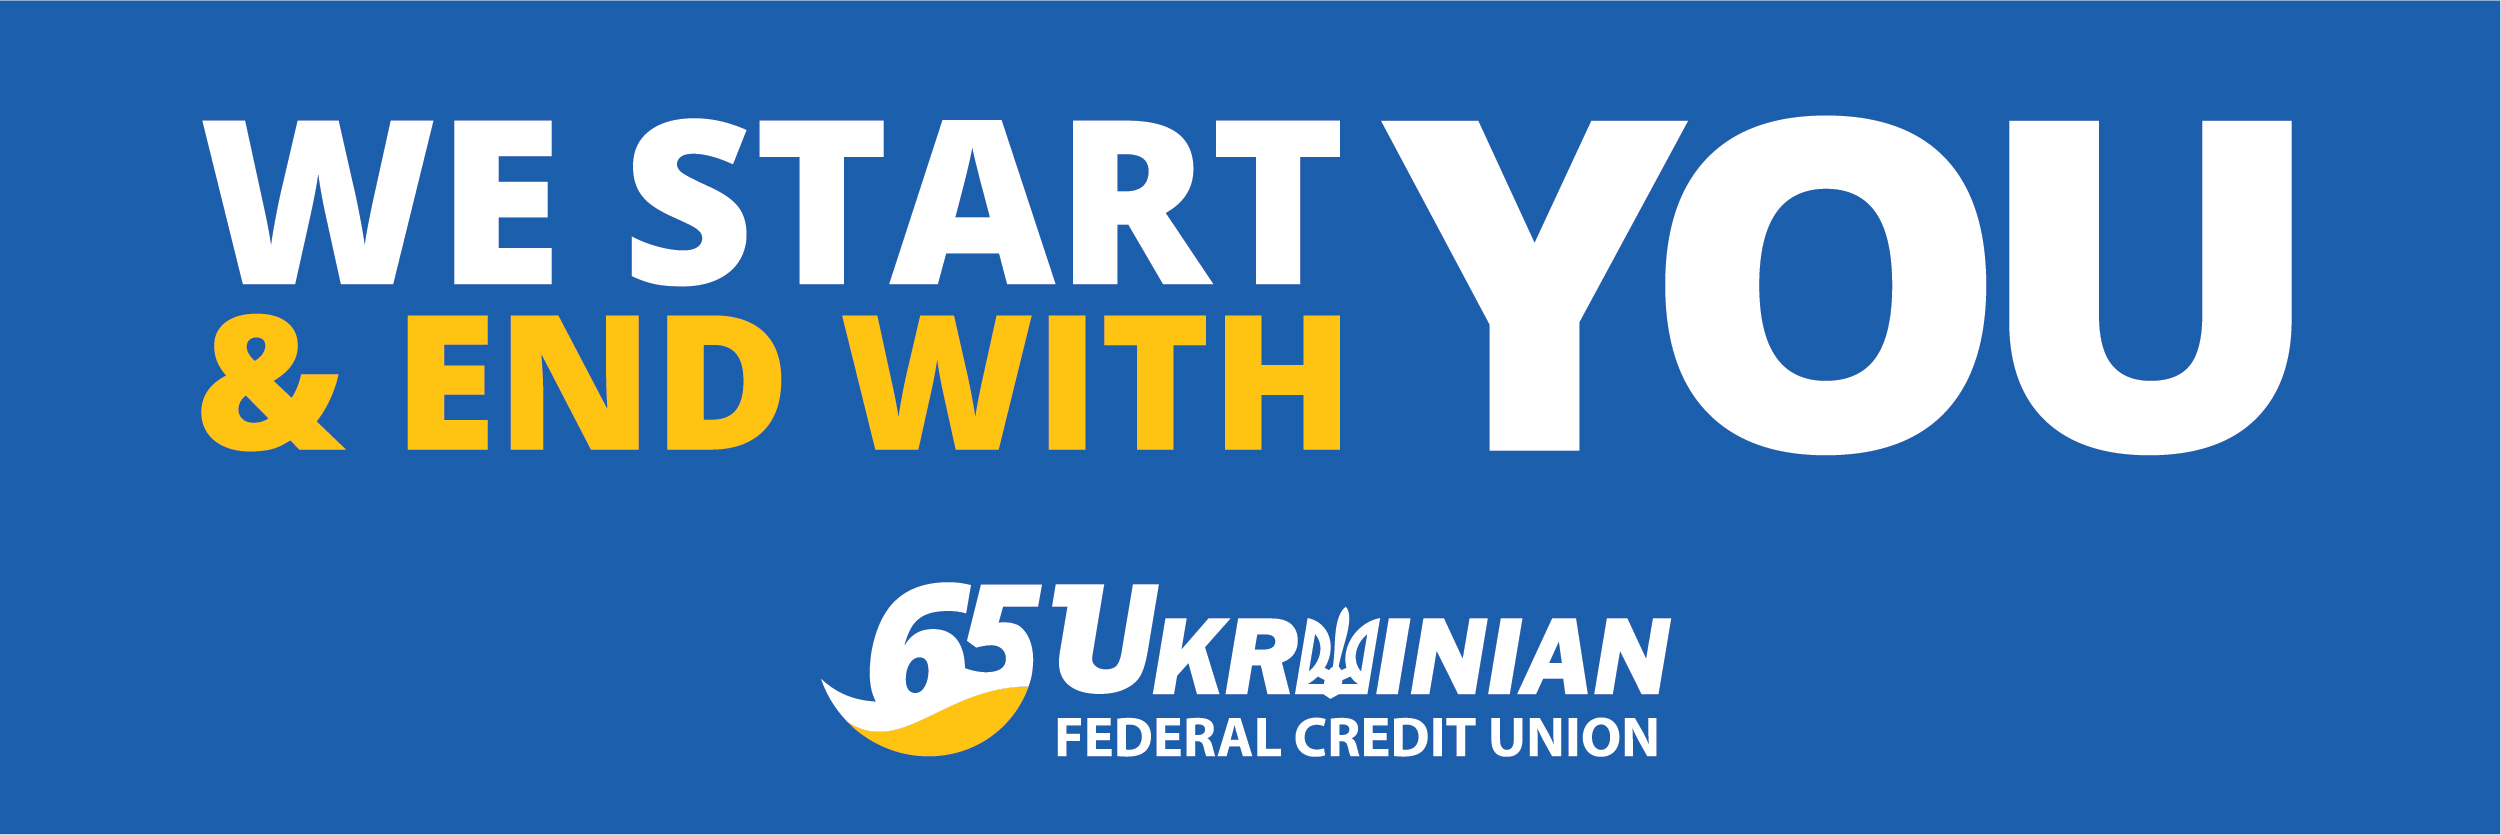 We start and end with you logo